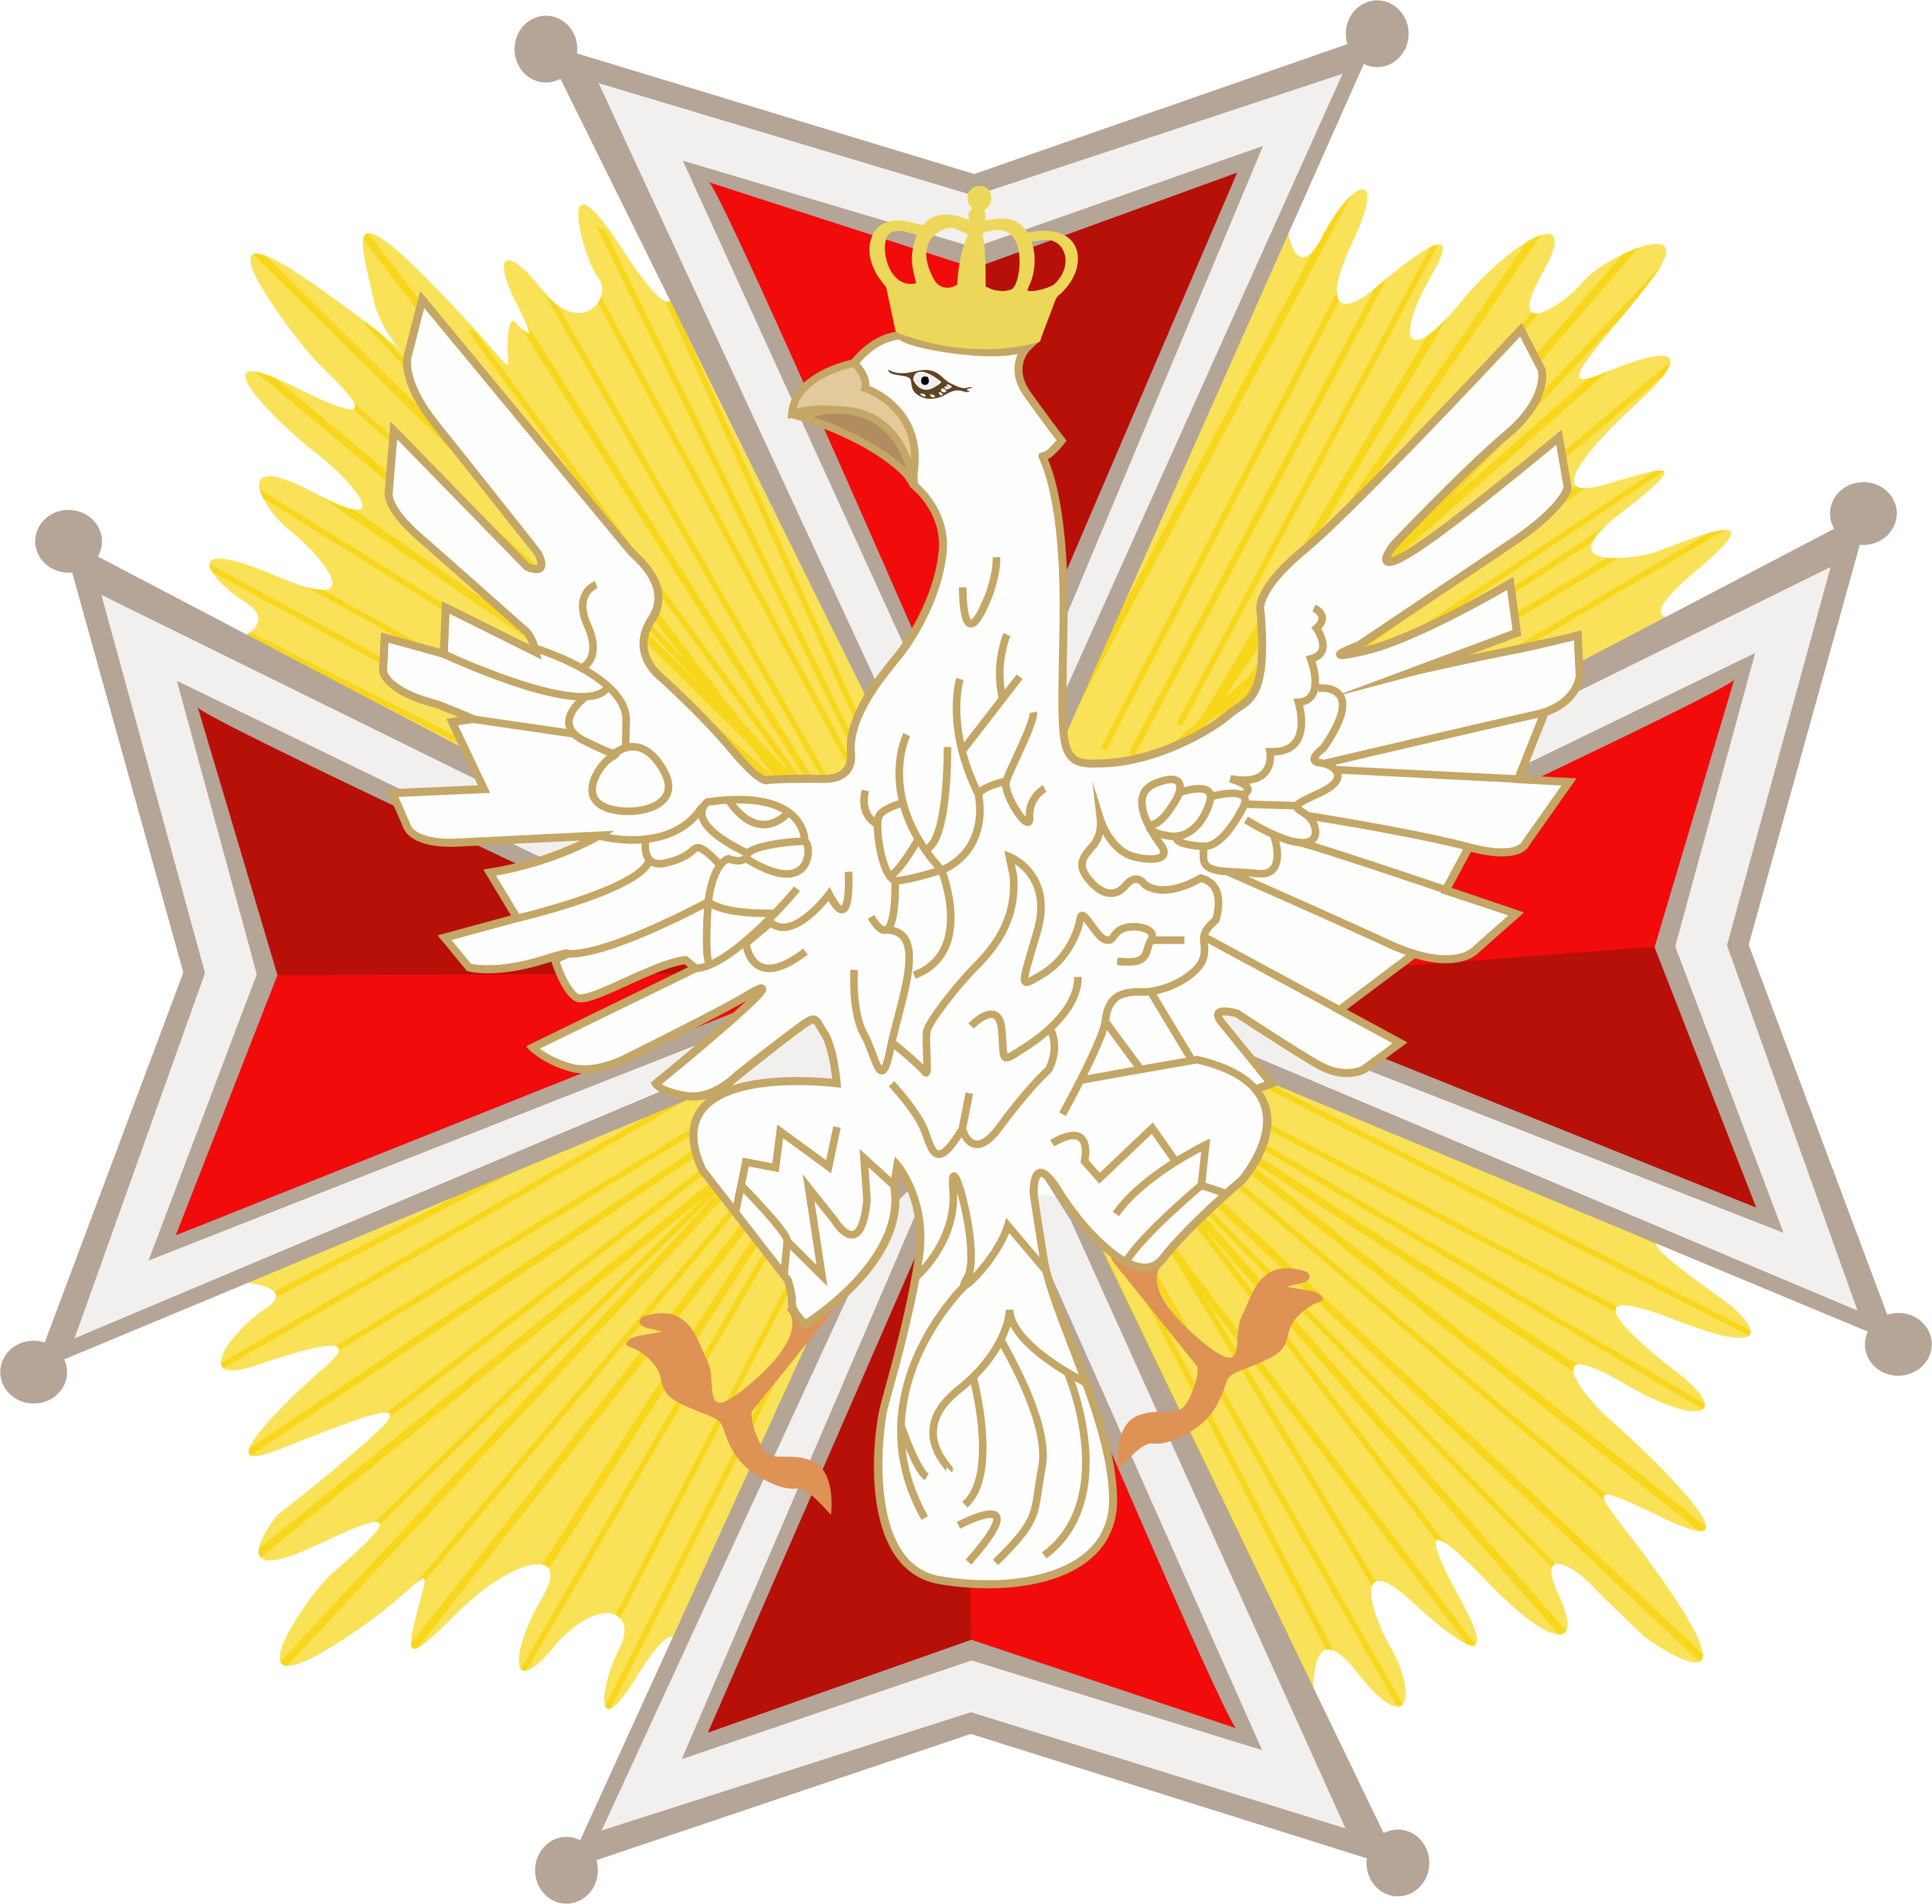 File:The Order of the White Eagle png - Wikimedia Commons